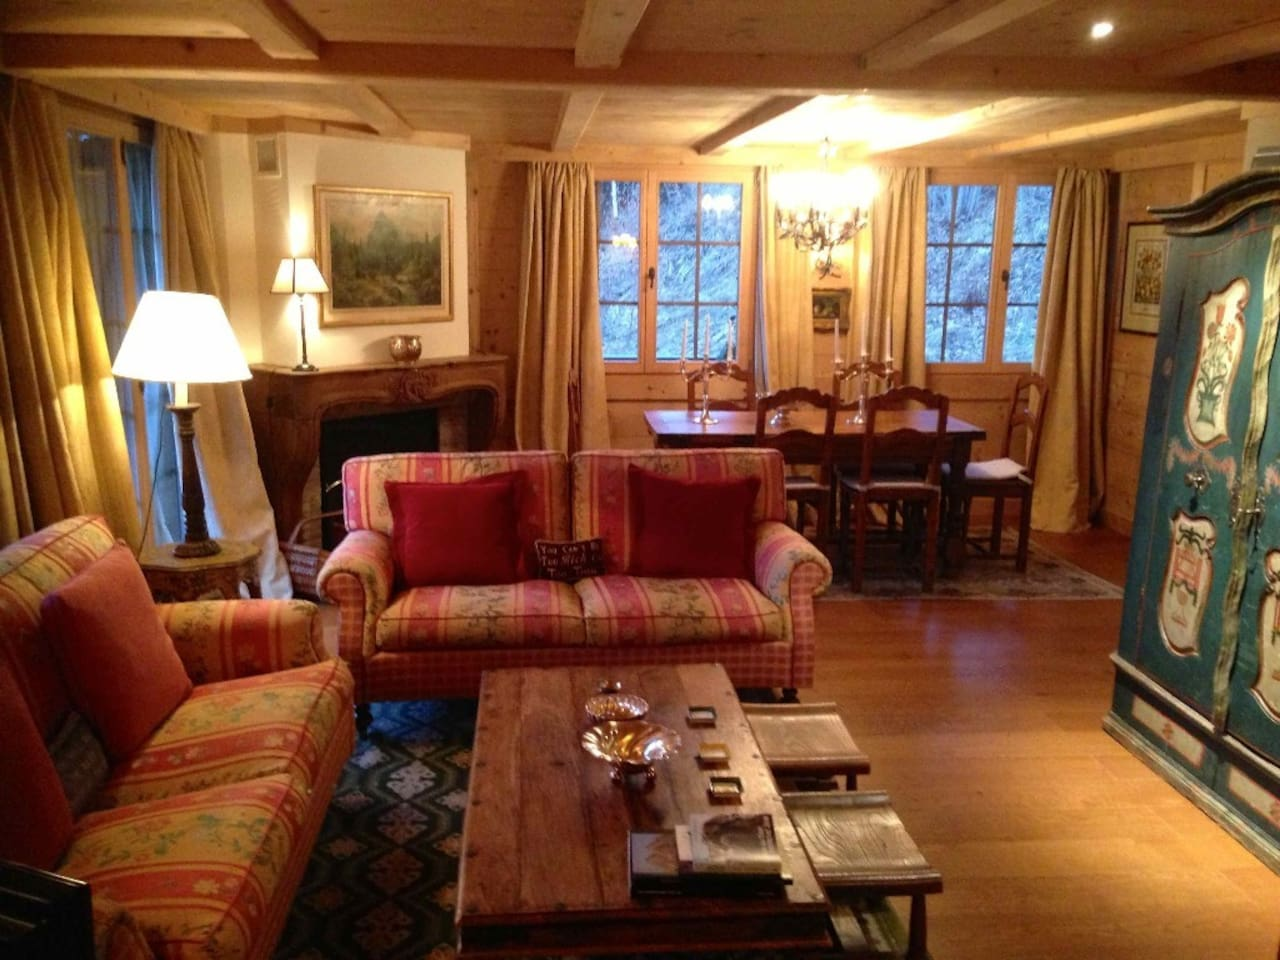 Gstaad - Luxury Flat in Schonried with Great Views photo 25541787